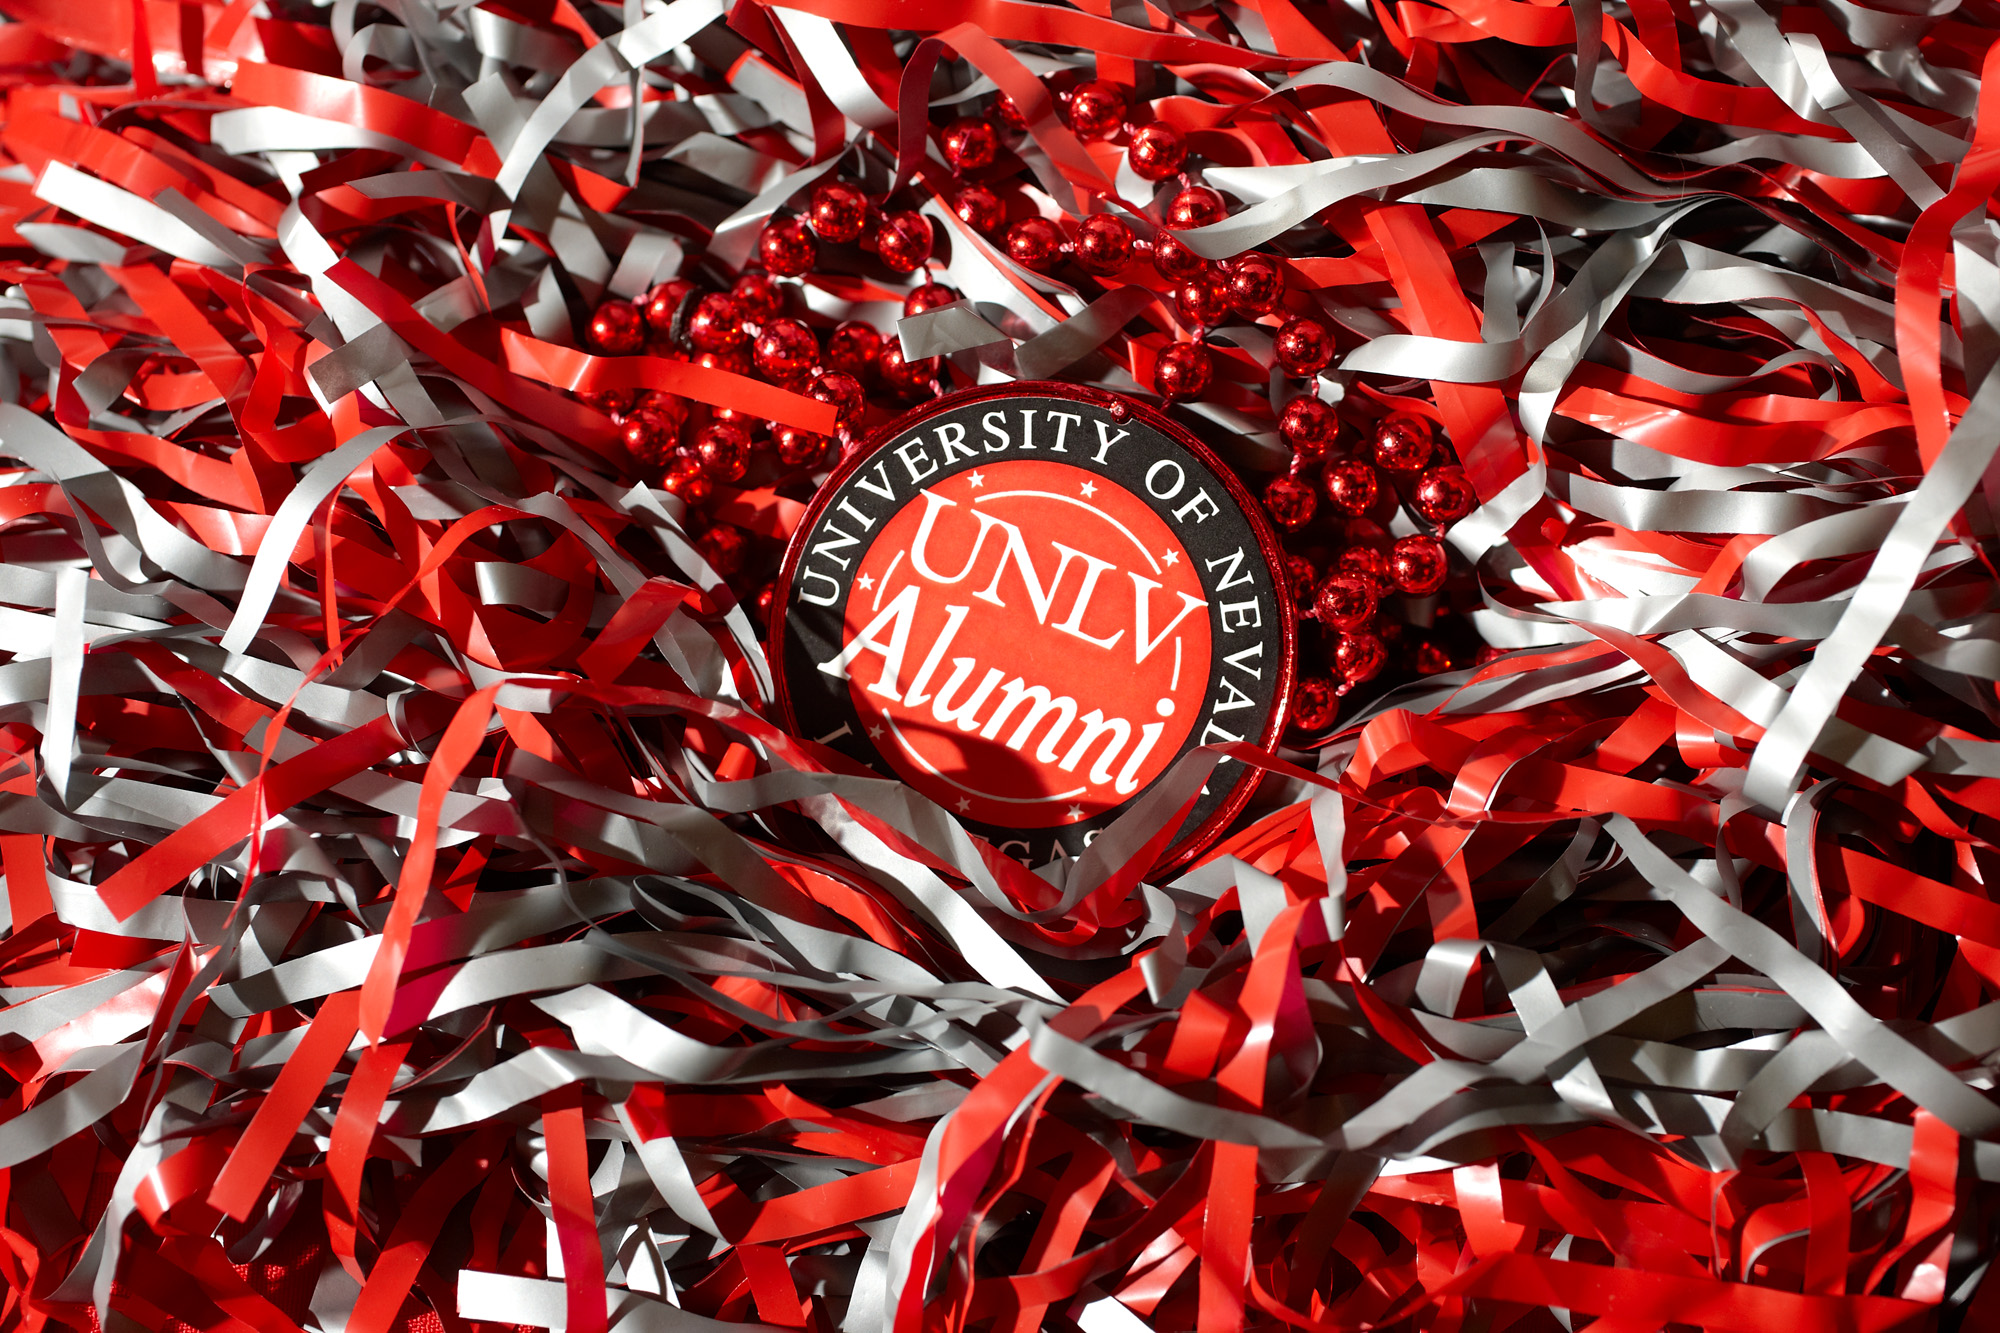 A UNLV Alumni badge surrounded by red and gray confetti.